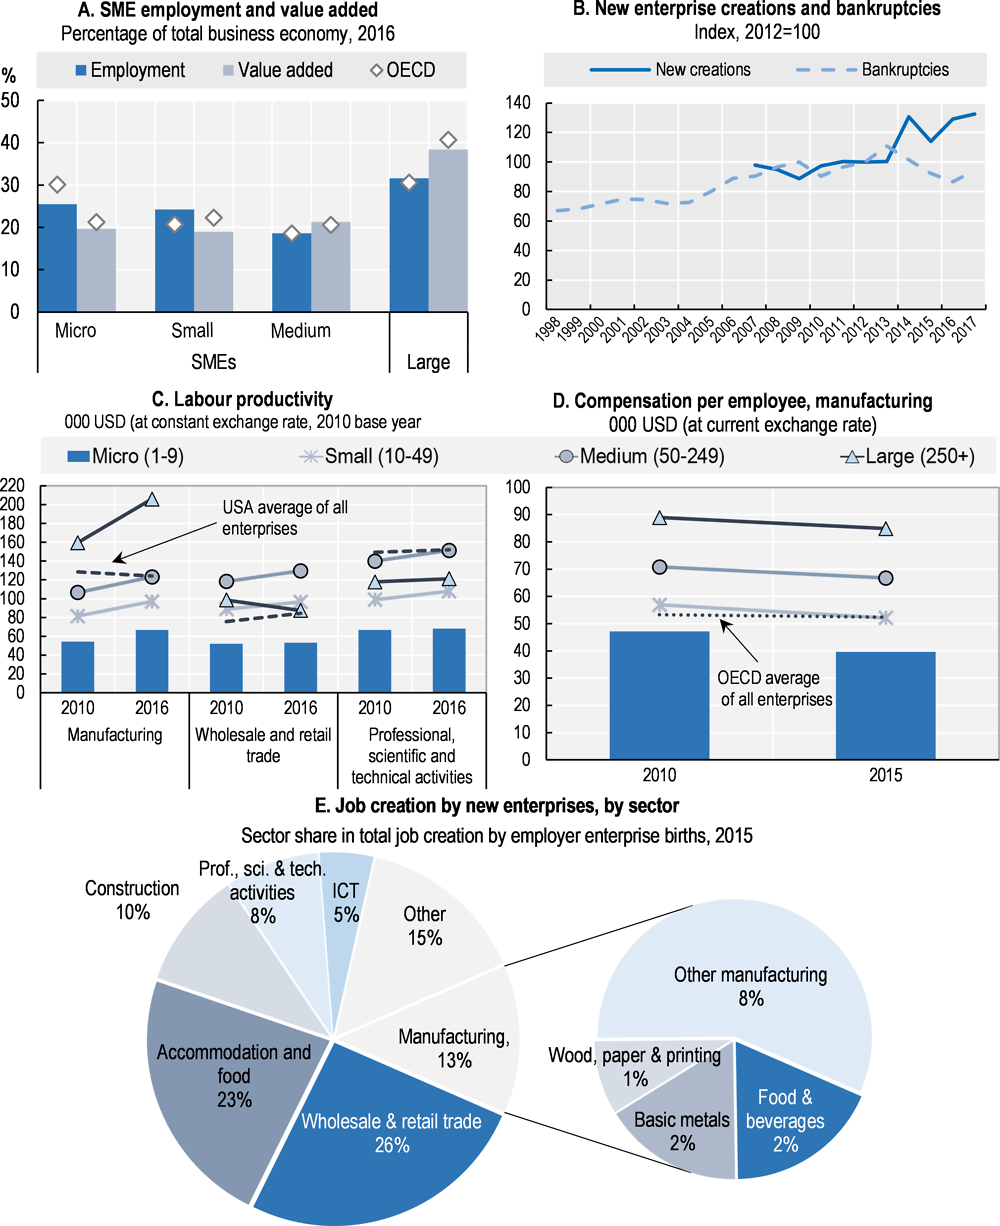 Figure 11.1. Structure and performance of the SME sector in Belgium